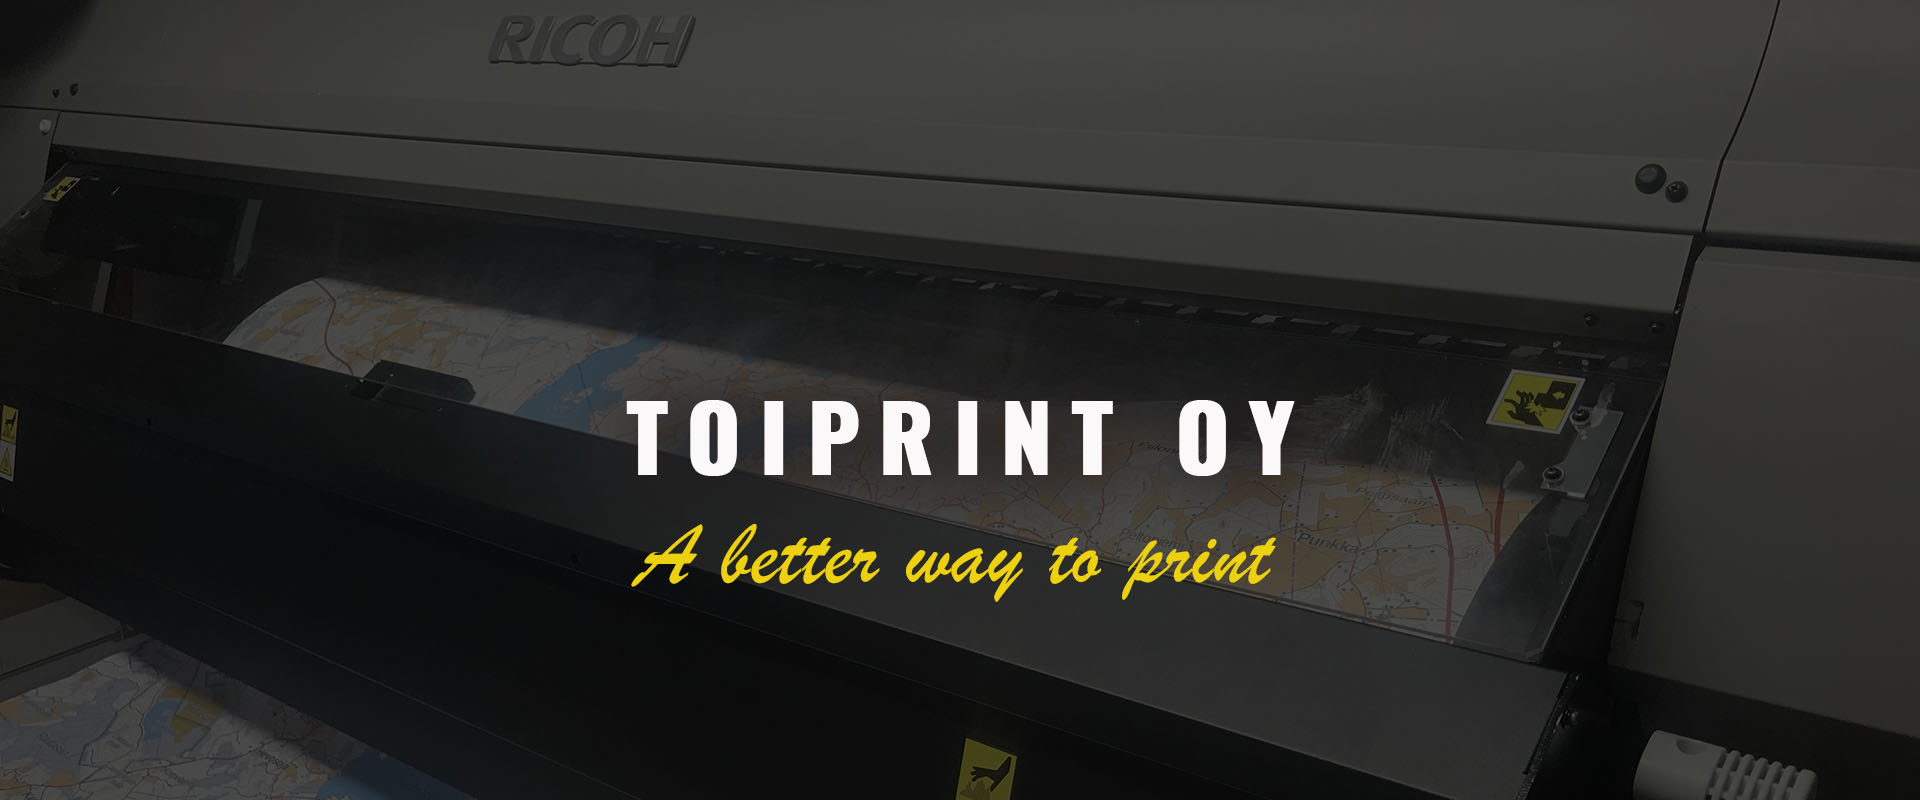 Toiprint Oy - A better way to print